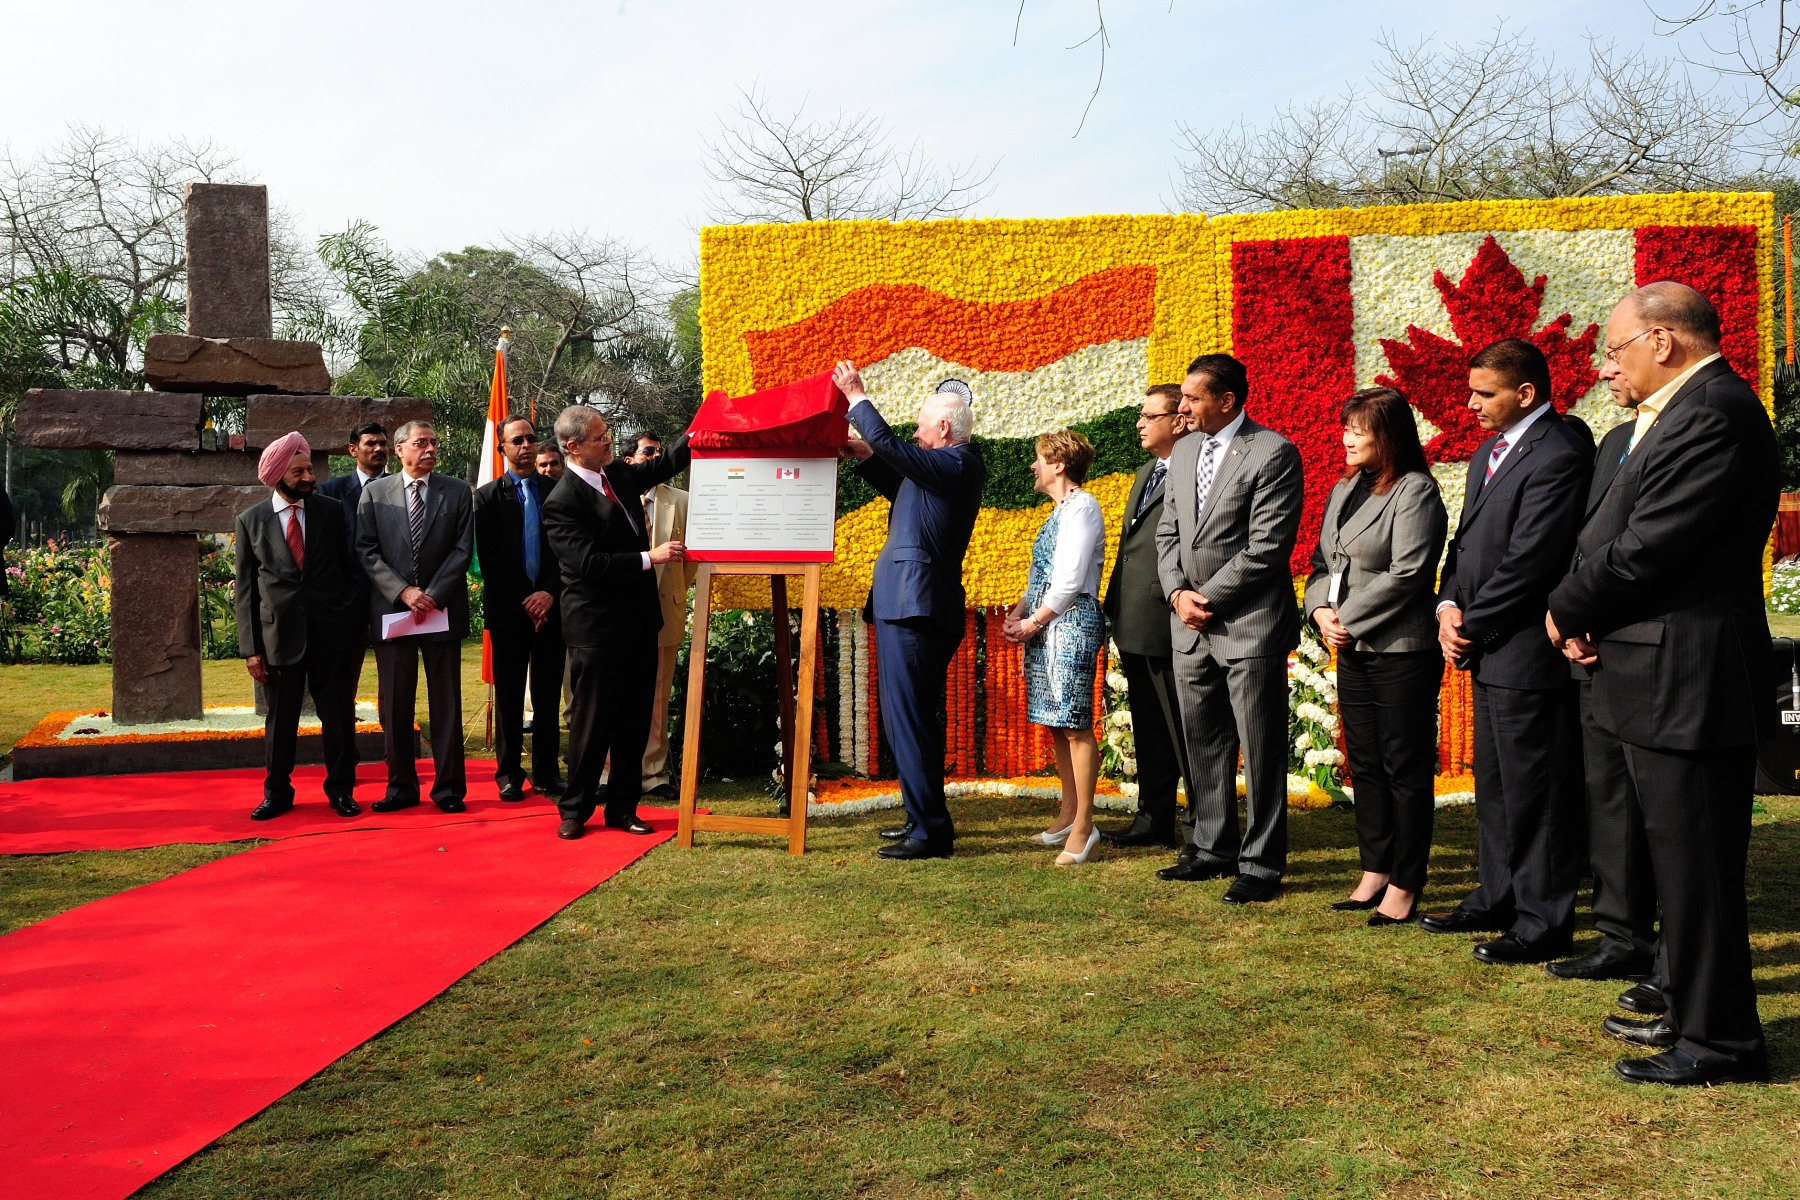 At the beginning of the day, Their Excellencies unveiled and presented an inuksuk on behalf of the people of Canada to the people of India as a symbol of the friendship and co-operation shared between both countries.